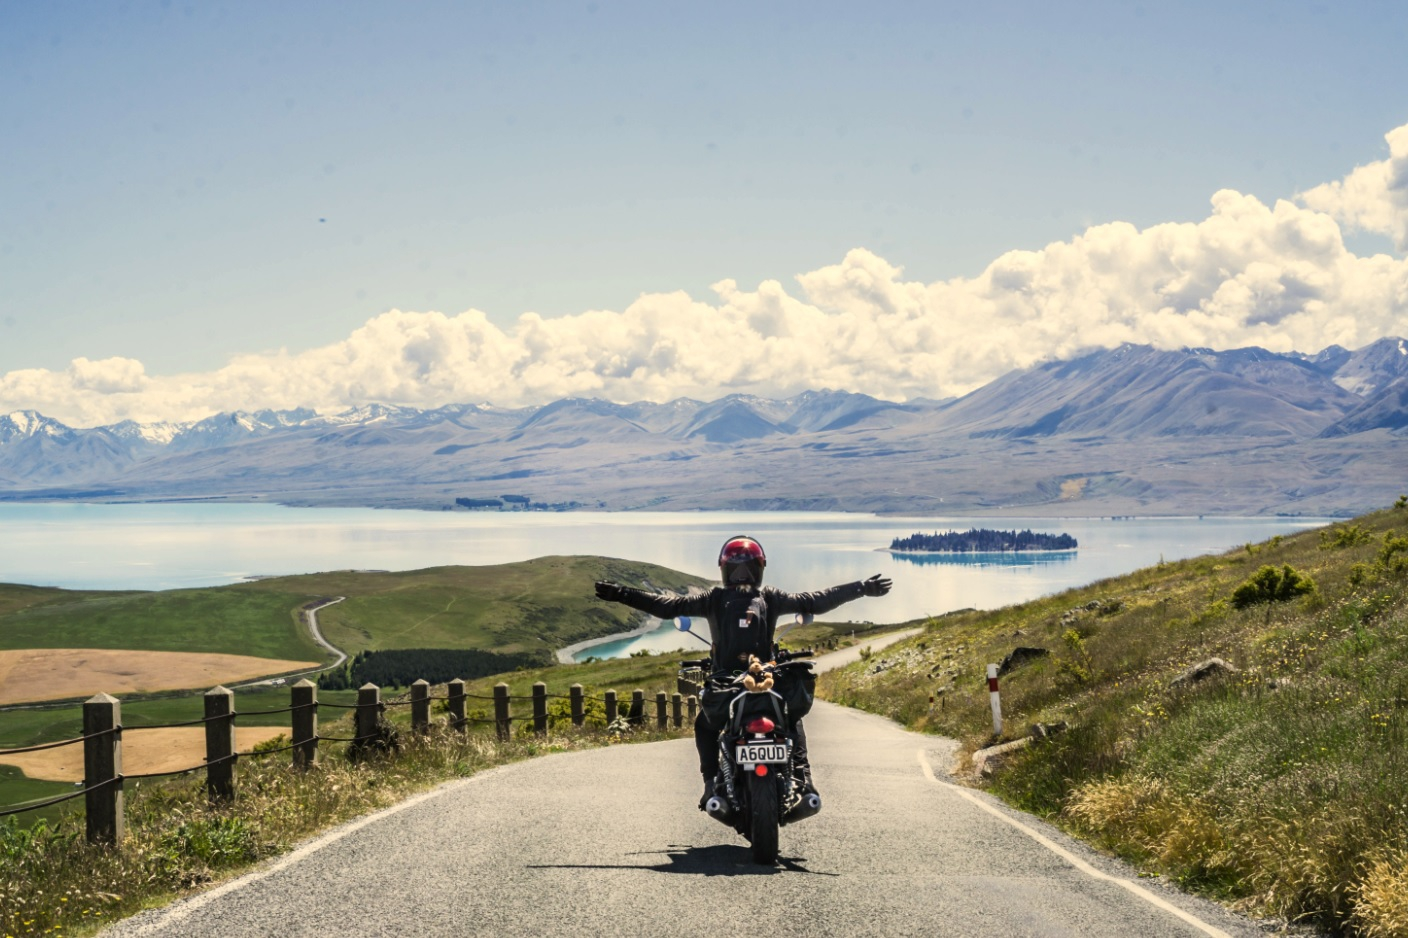 Exploring New Zealand's South Island by Motorcycle